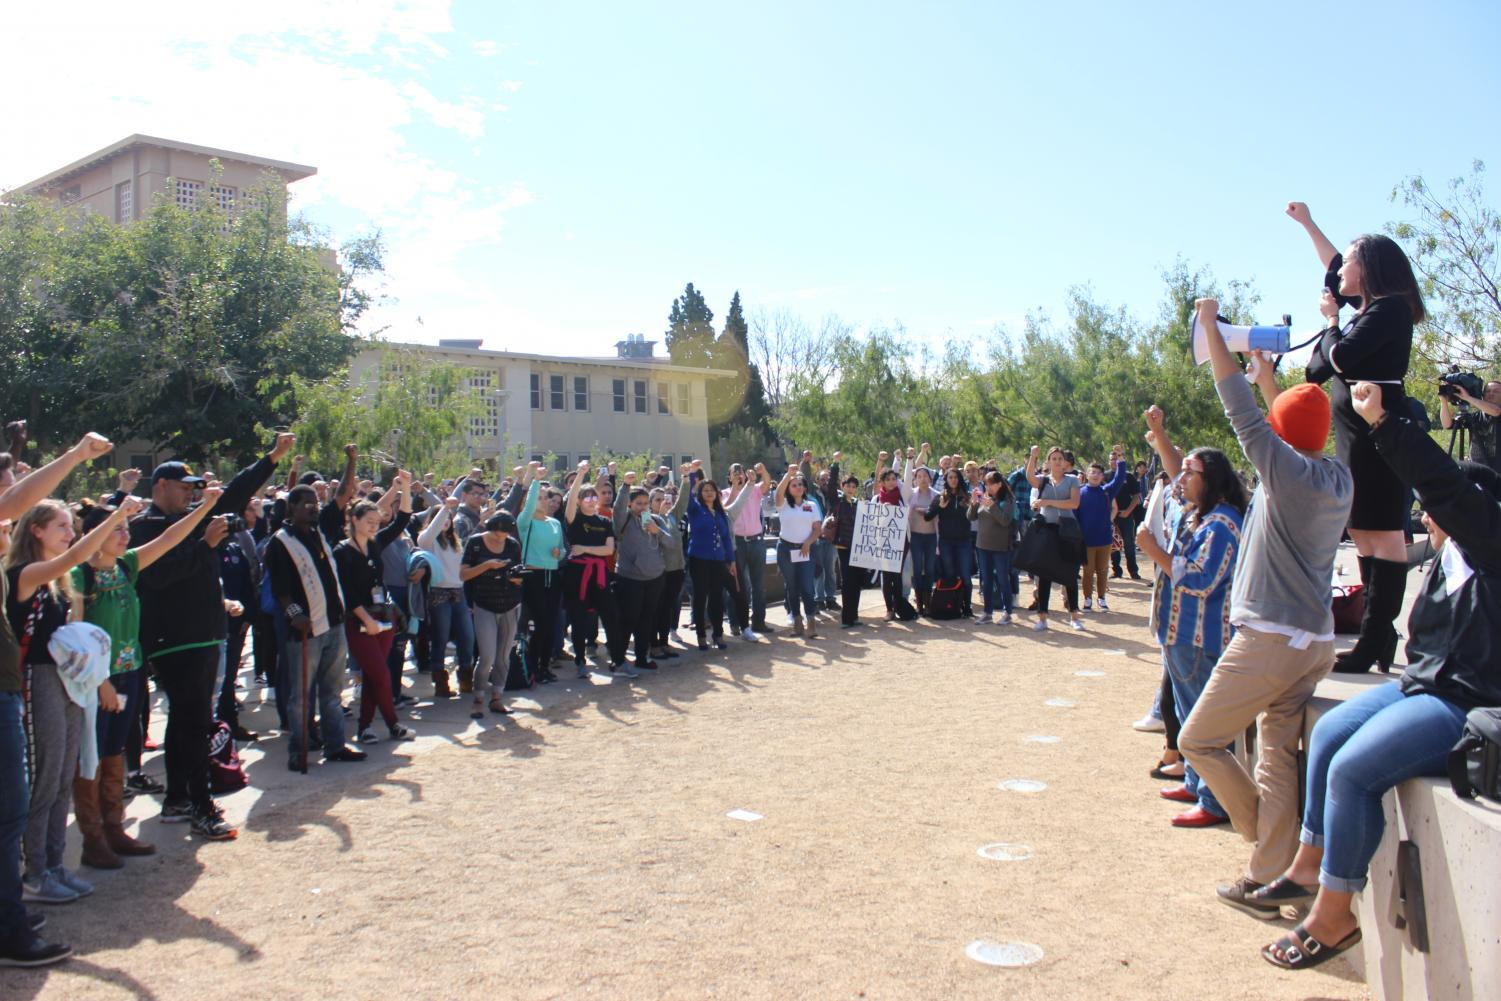 Over+100+students+and+supporters+of+the+protest+gathered+around+Centennial+Plaza.